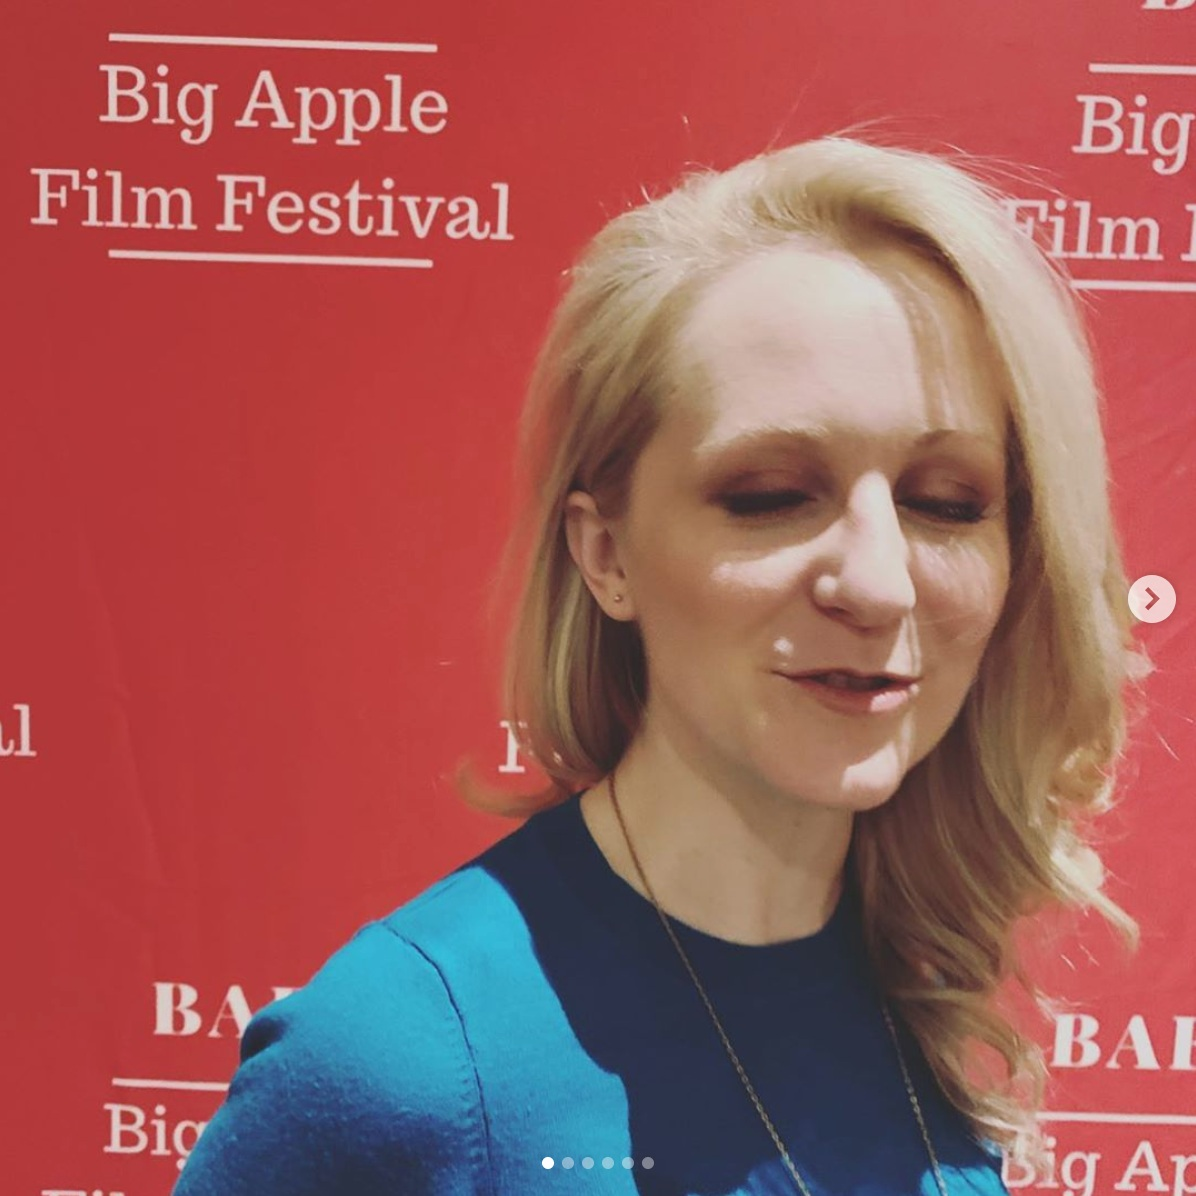 Funny Faces in the Big Apple! - Loved seeing our feature film SNOWFLAKE at the Big Apple Film Festival. Clearly I need to up my step-and-repeat game…